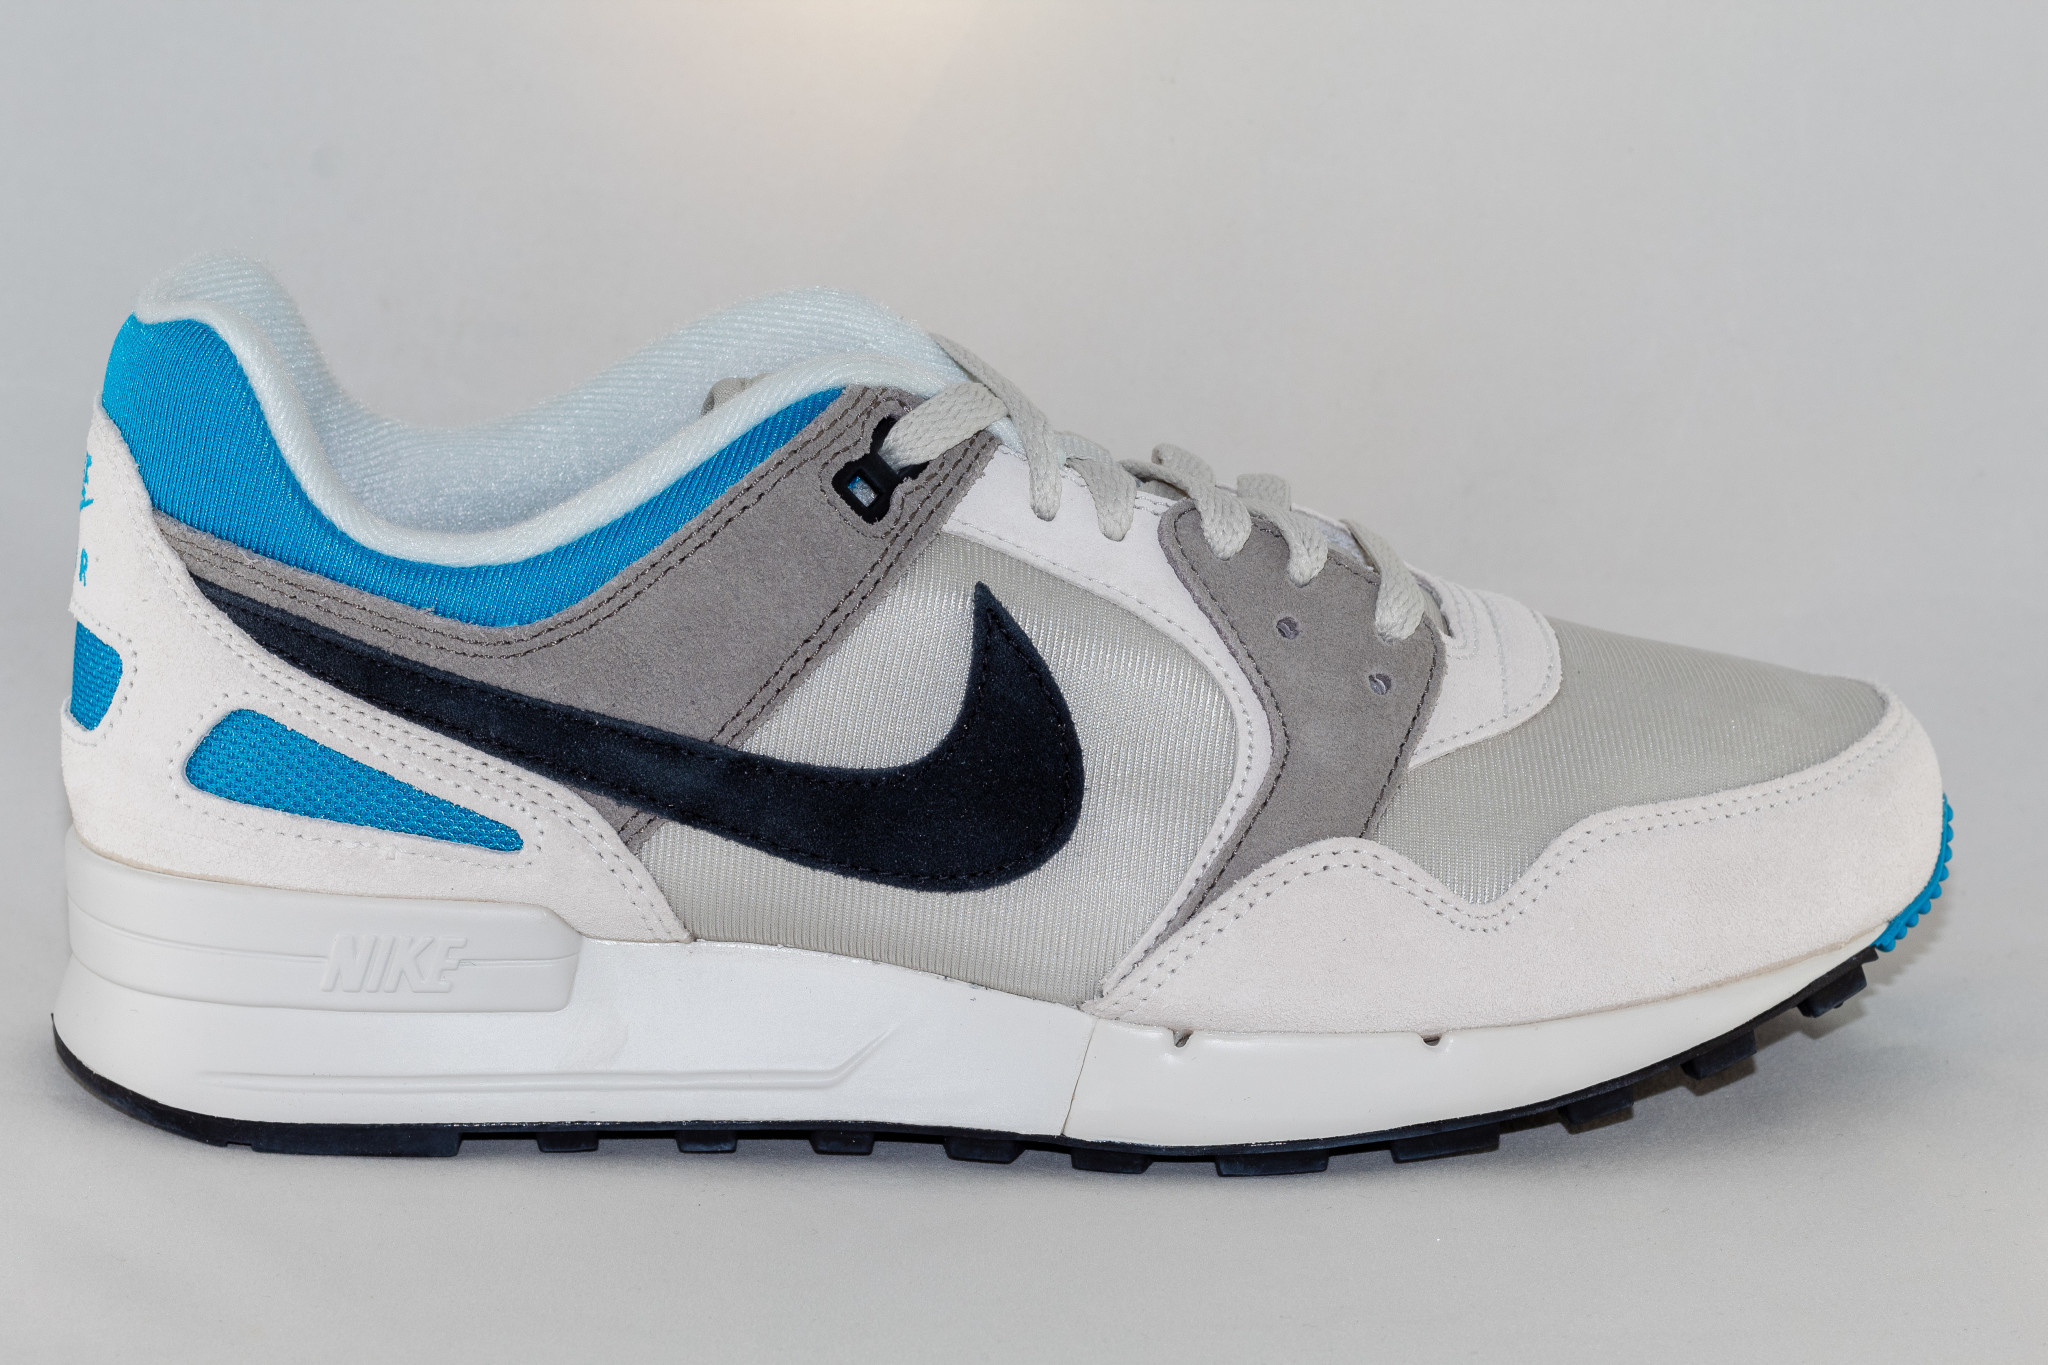 Nike PEGASUS '89 SE Light Bone/ Black- Vivid Blue